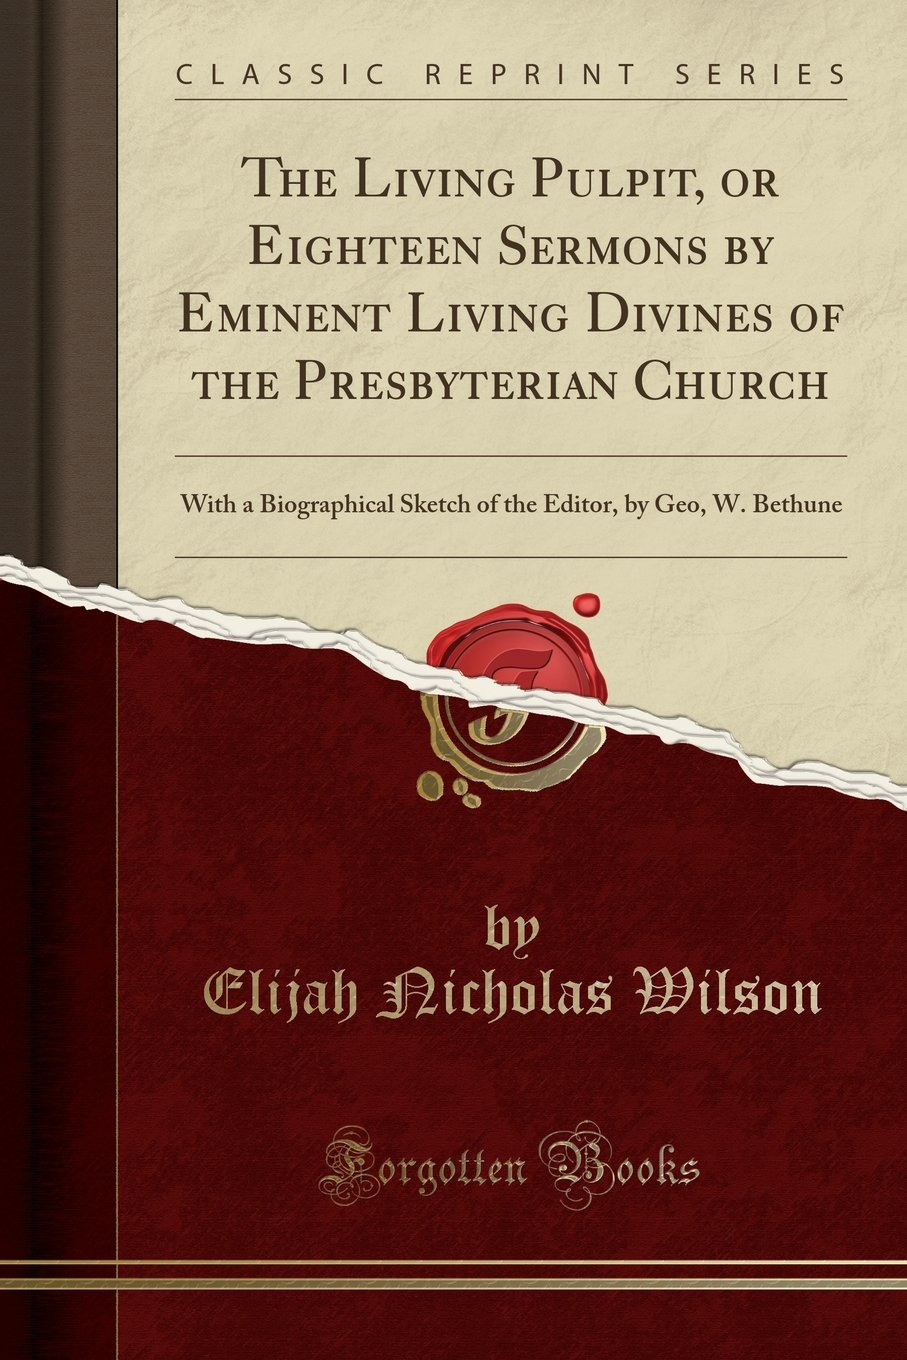 Read Online The Living Pulpit, or Eighteen Sermons by Eminent Living Divines of the Presbyterian Church: With a Biographical Sketch of the Editor, by Geo, W. Bethune (Classic Reprint) pdf epub